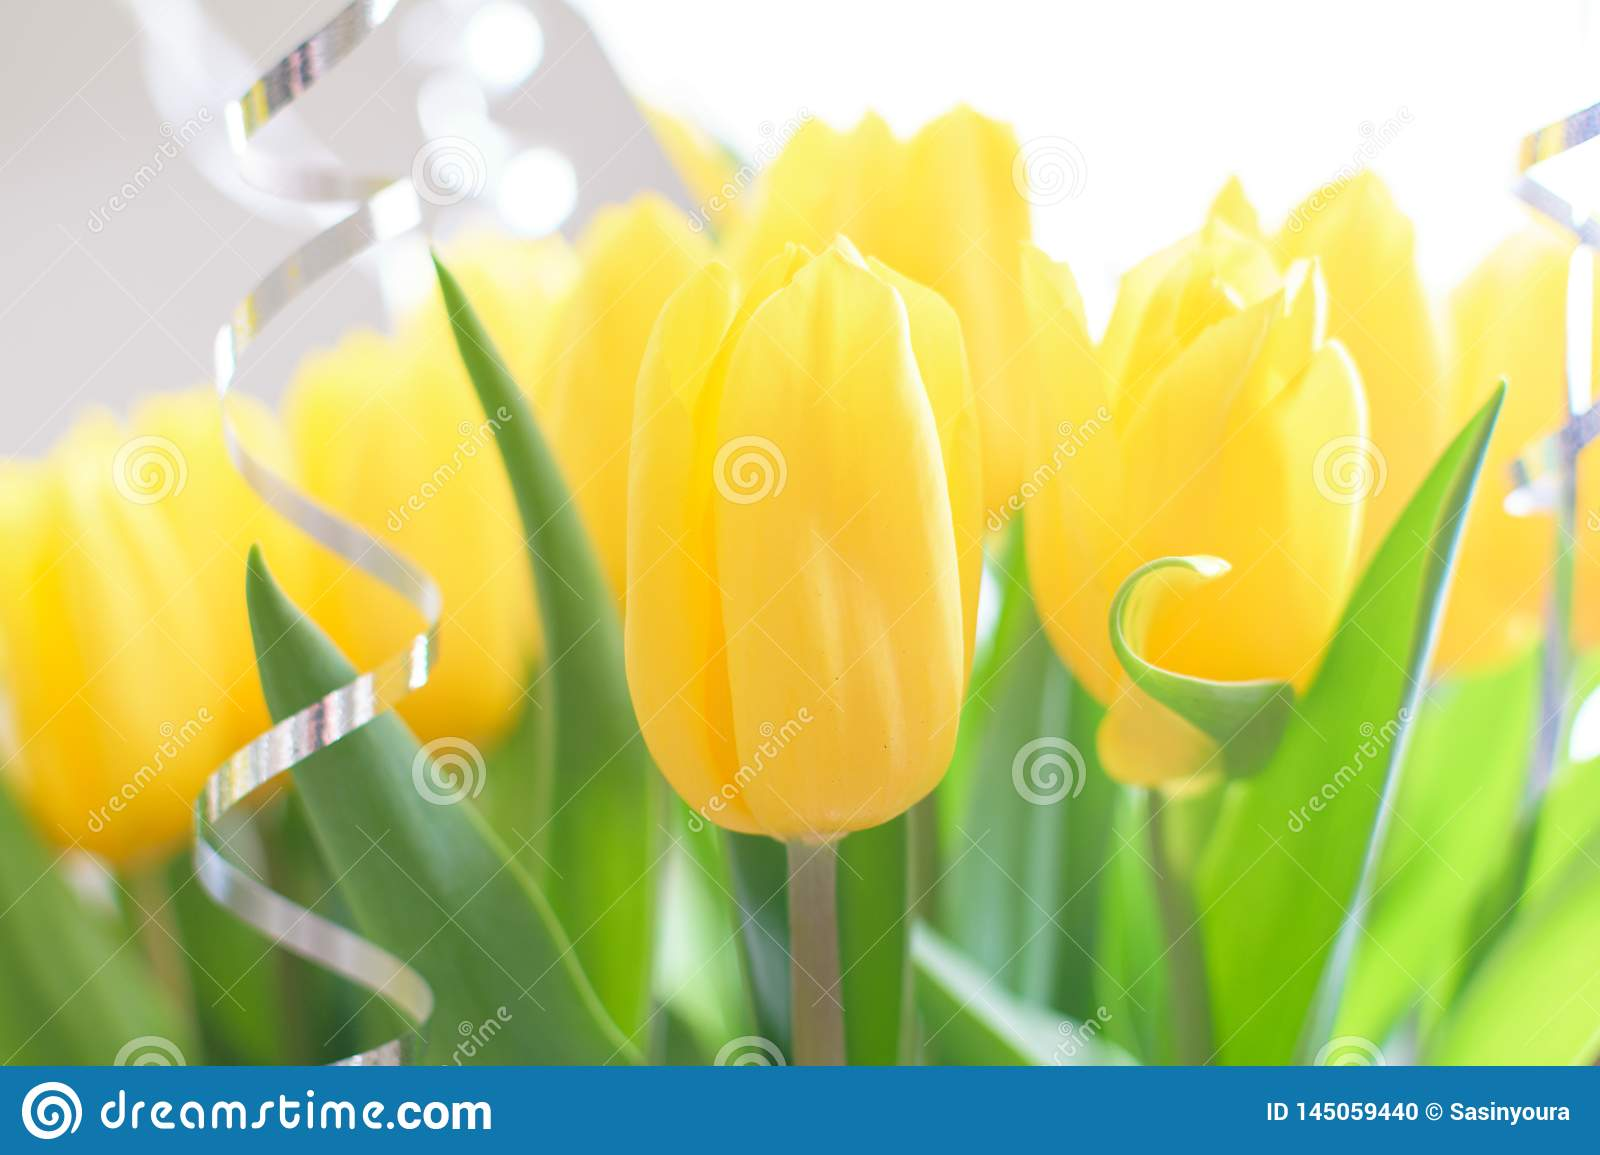 Yellow tulips, beautiful bouquet flowers close-up with blurred background